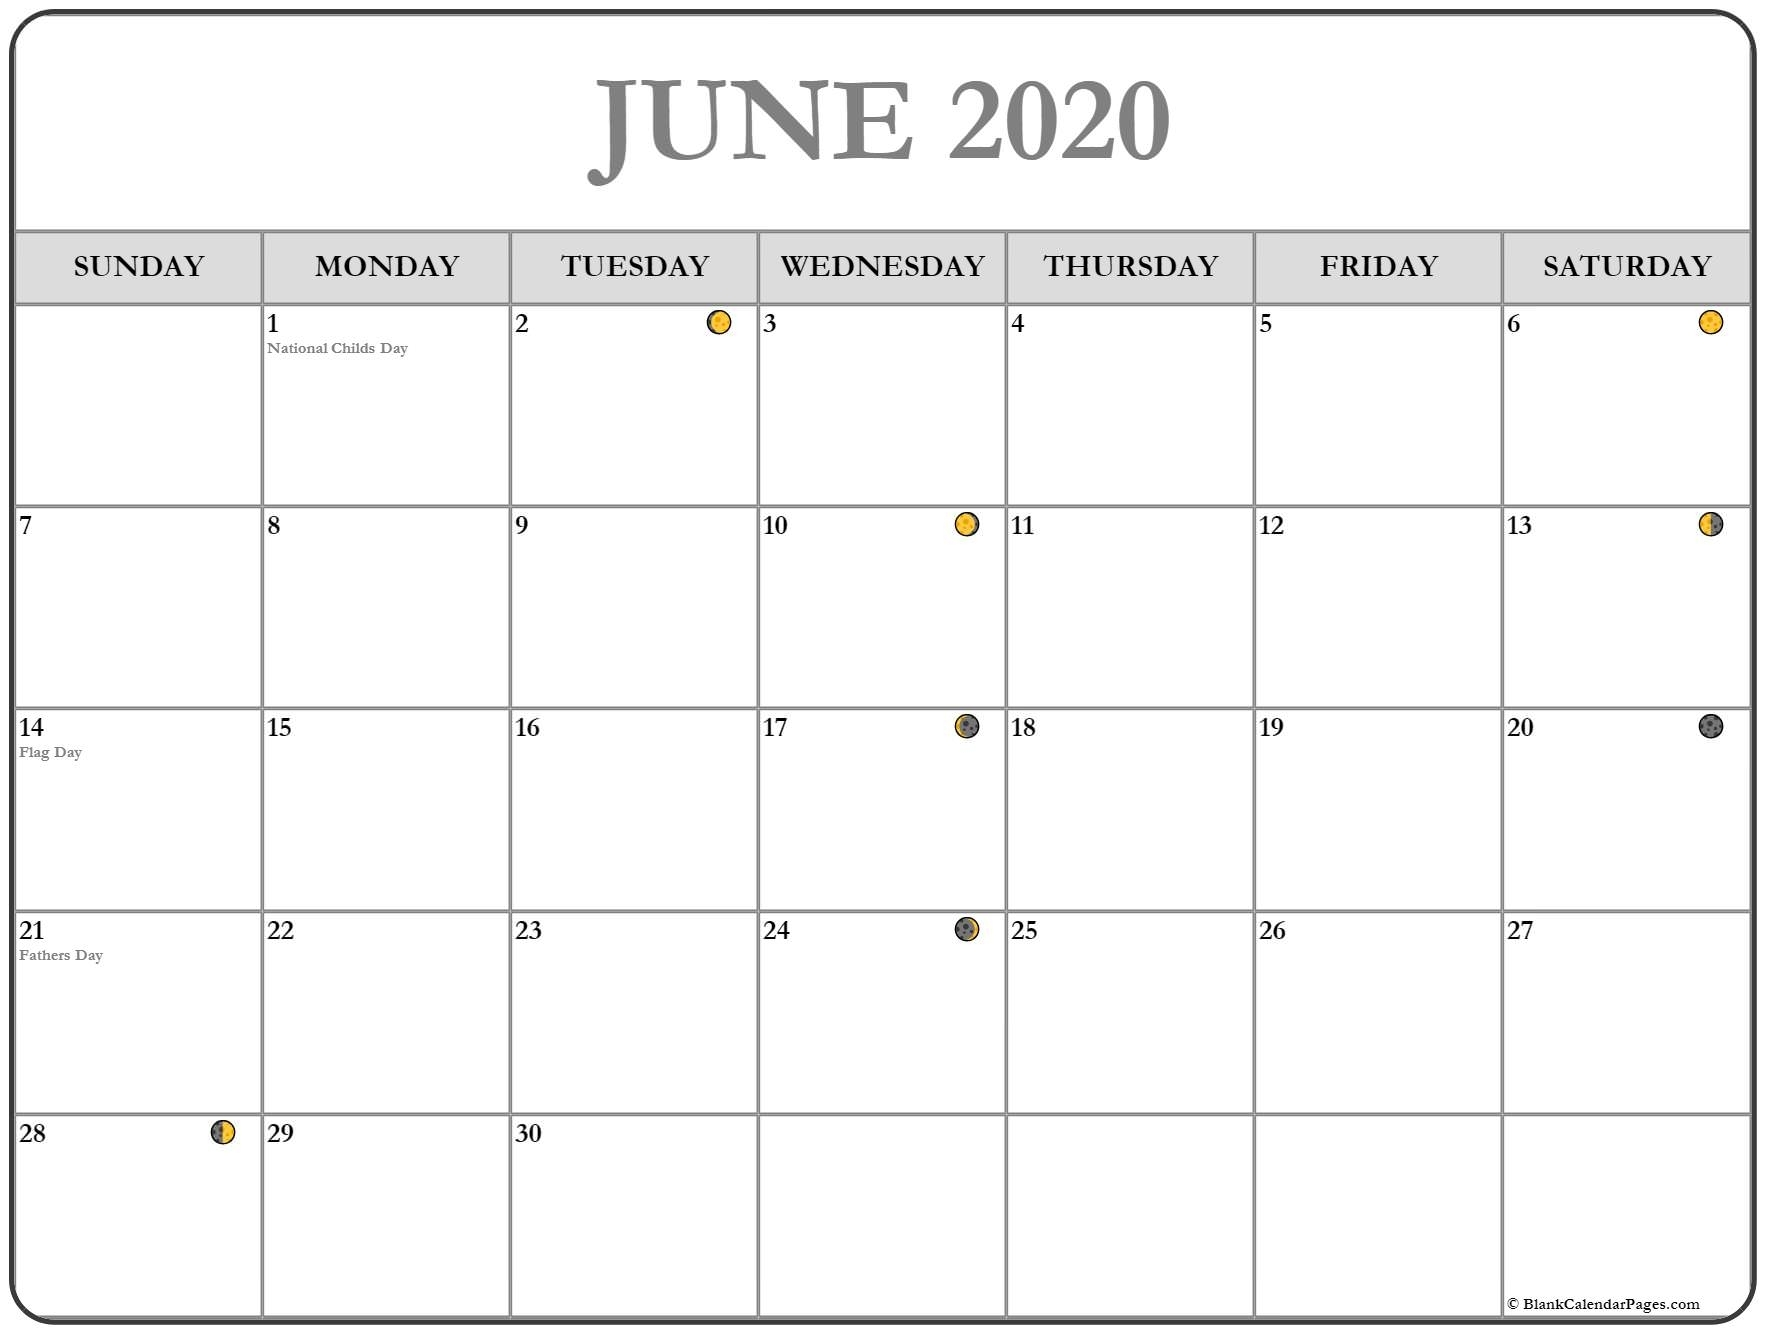 June 2020 Lunar Calendar | Moon Phase Calendar